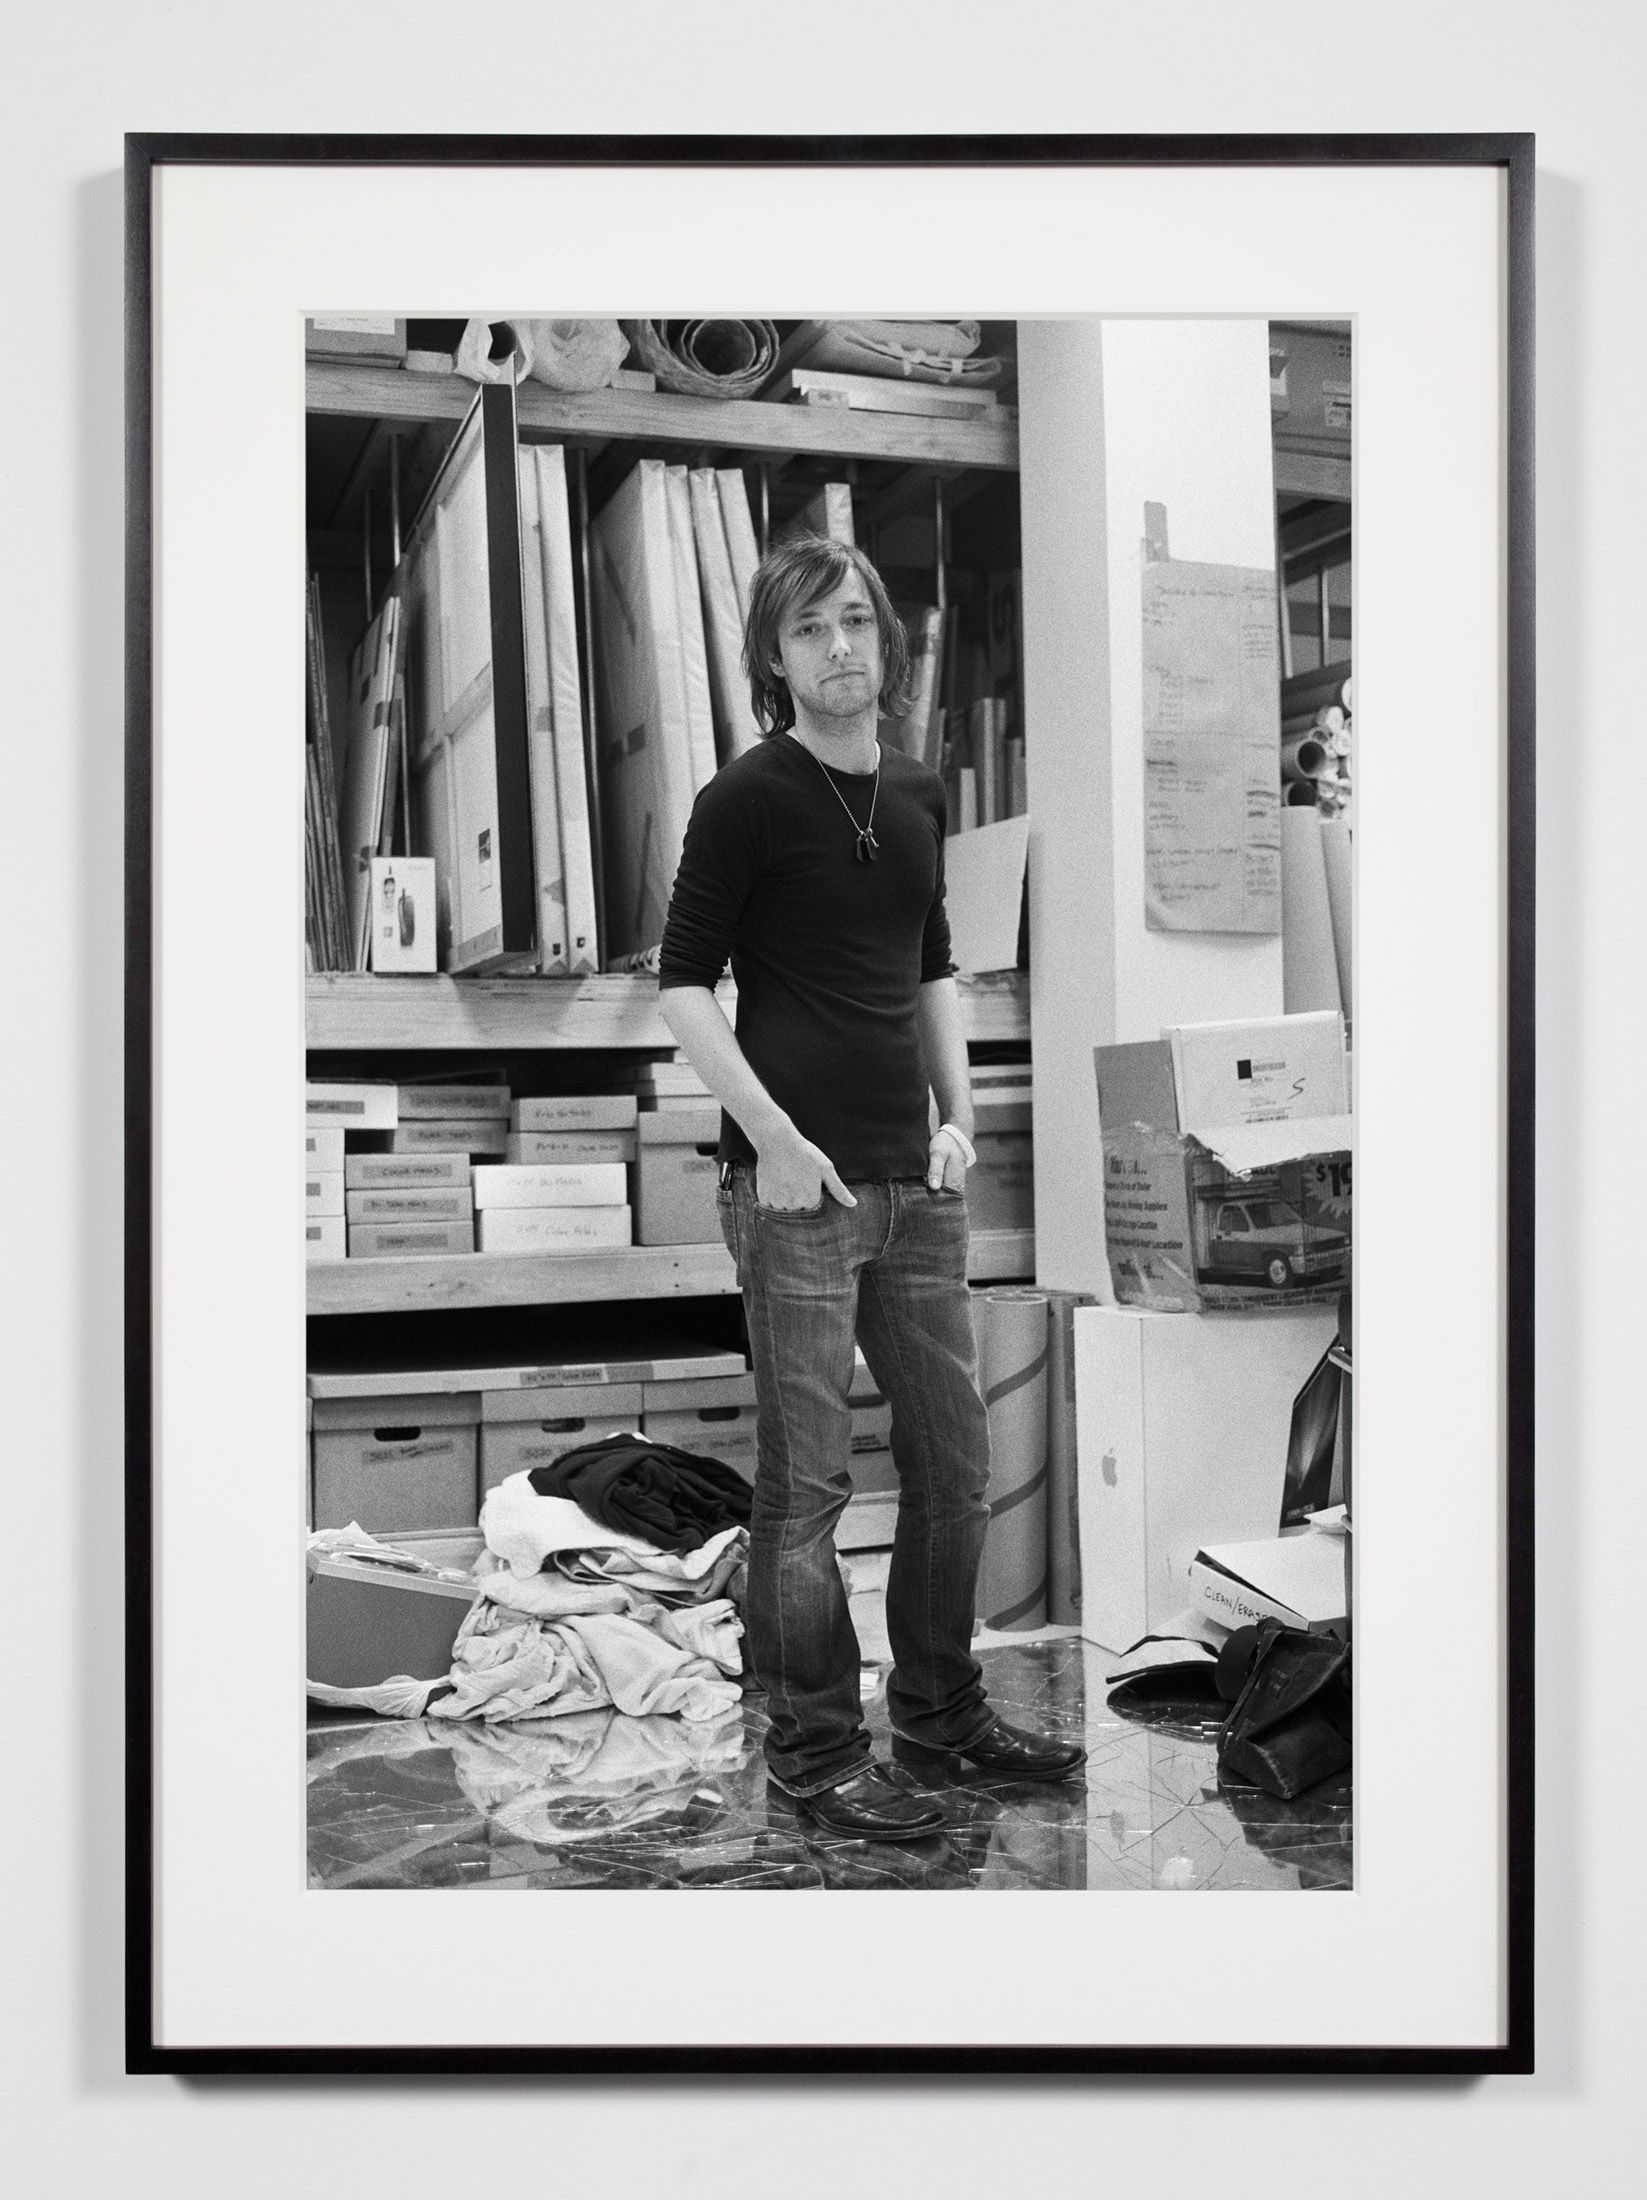 Studio Manager (JRM), Los Angeles, California, July 26, 2008    2009   Epson Ultrachrome K3 archival ink jet print on Hahnemühle Photo Rag paper  36 3/8 x 26 3/8 inches   Industrial Portraits, 2008–